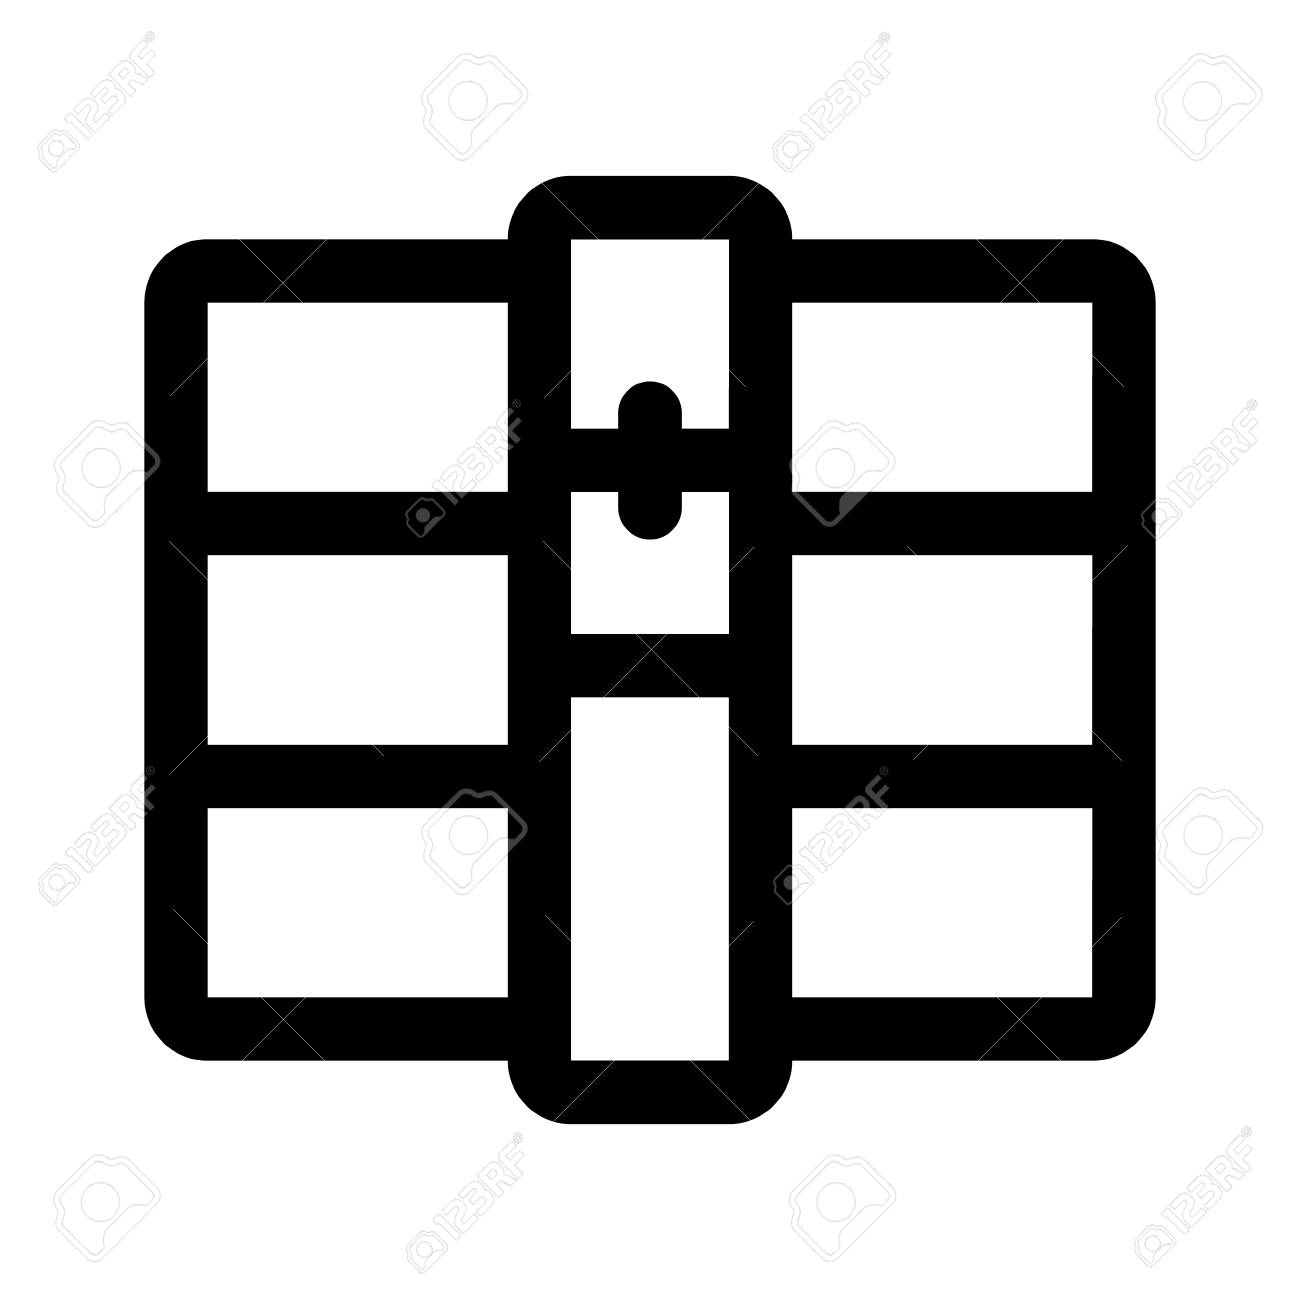 rar unrar file archive line art icon for apps and websites